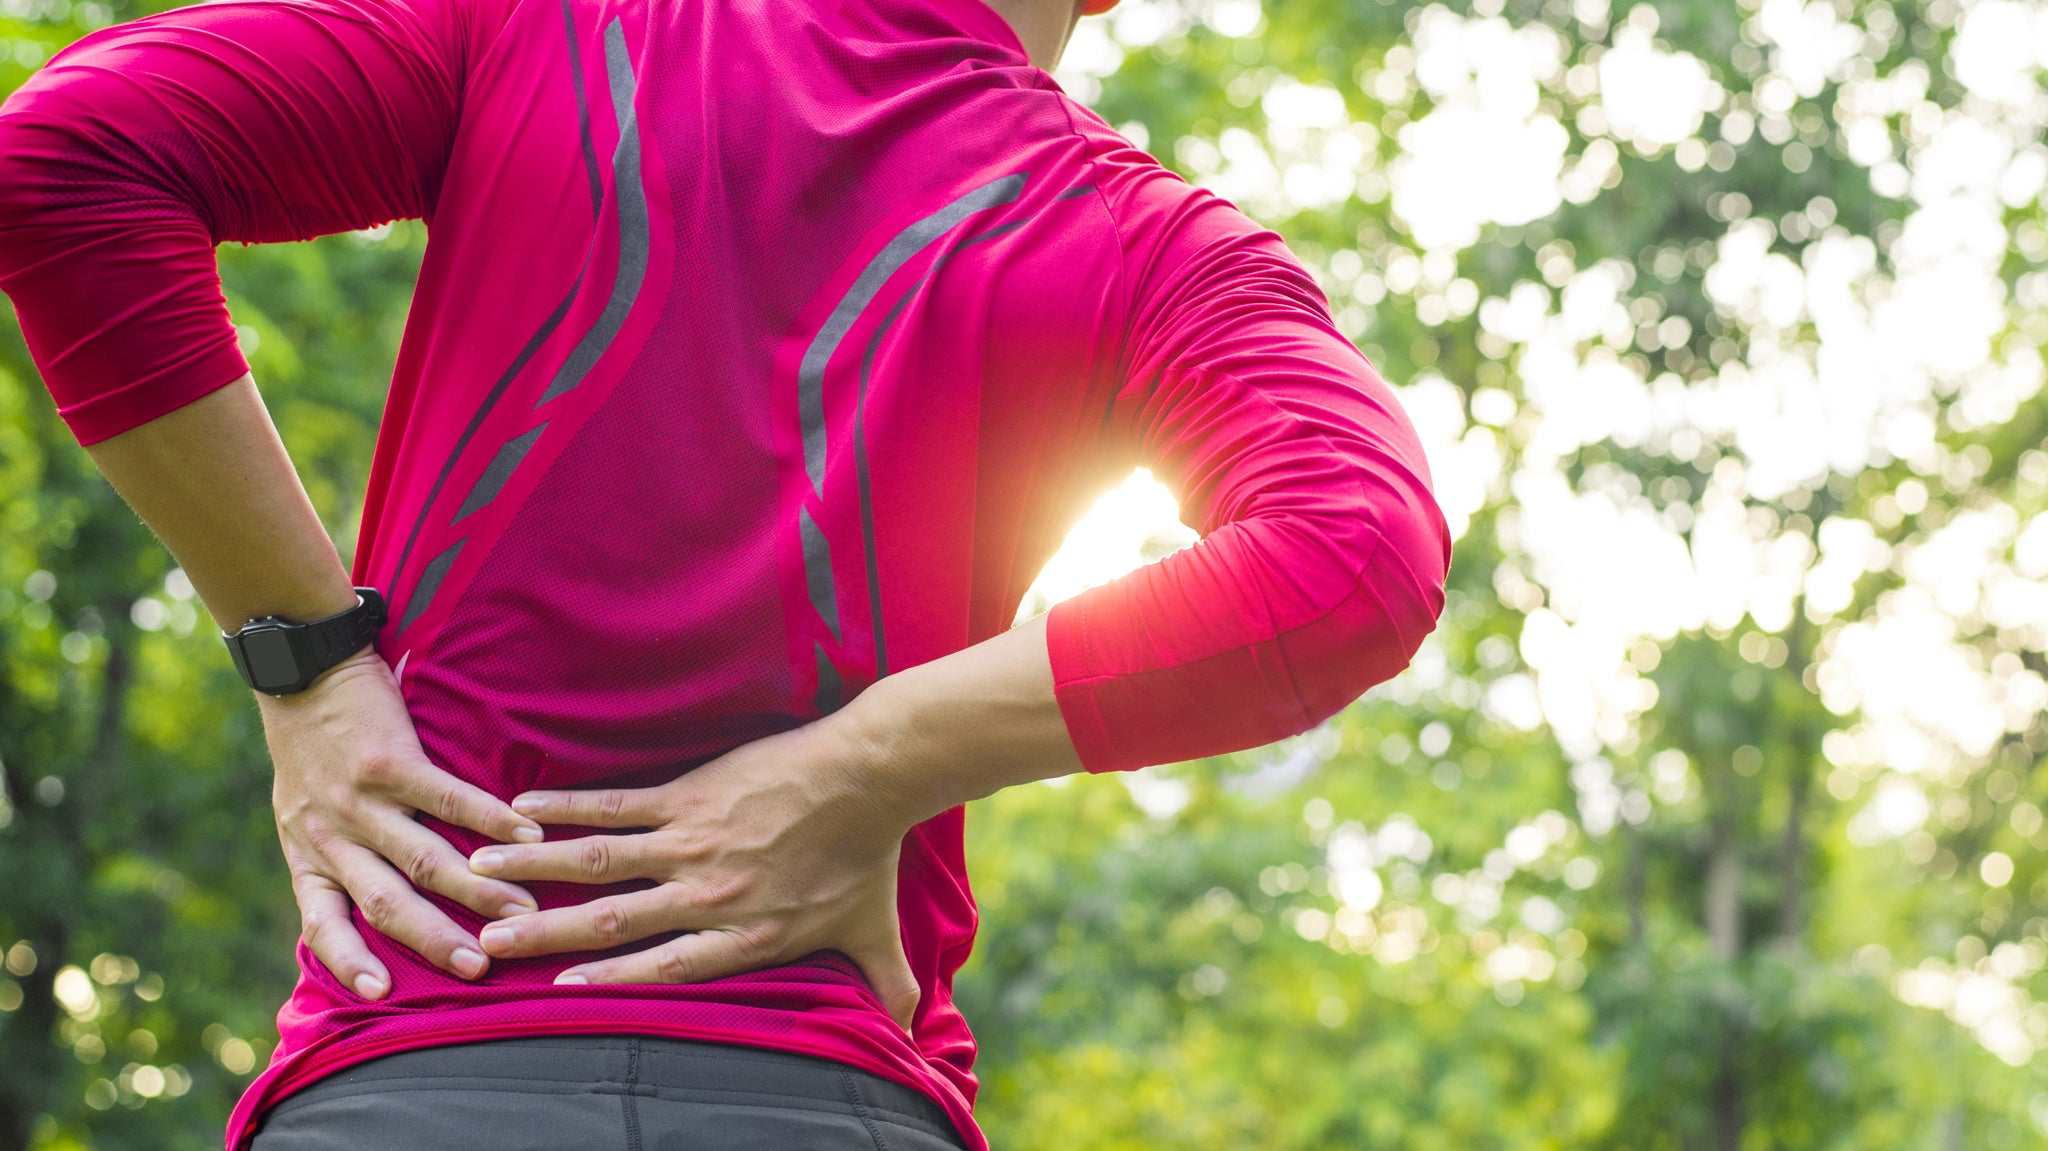 5 Mistakes People Make When Trying to Relieve Pain